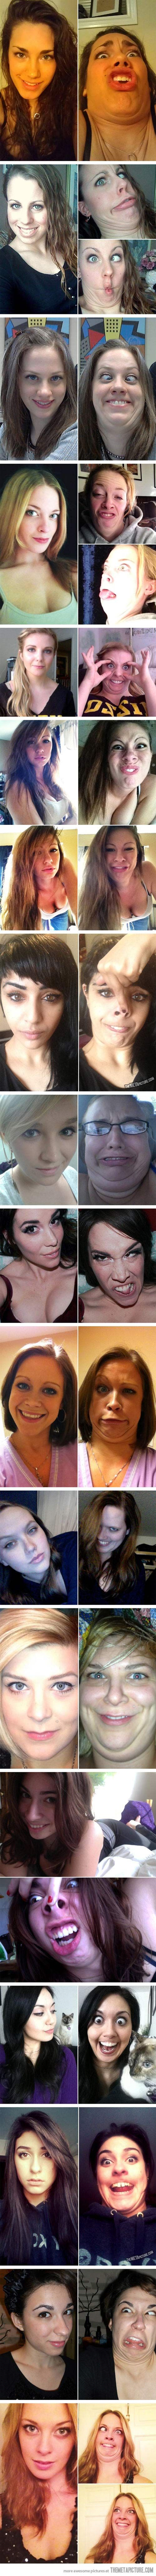 Pretty girls, ugly faces…this made me laugh so hard!